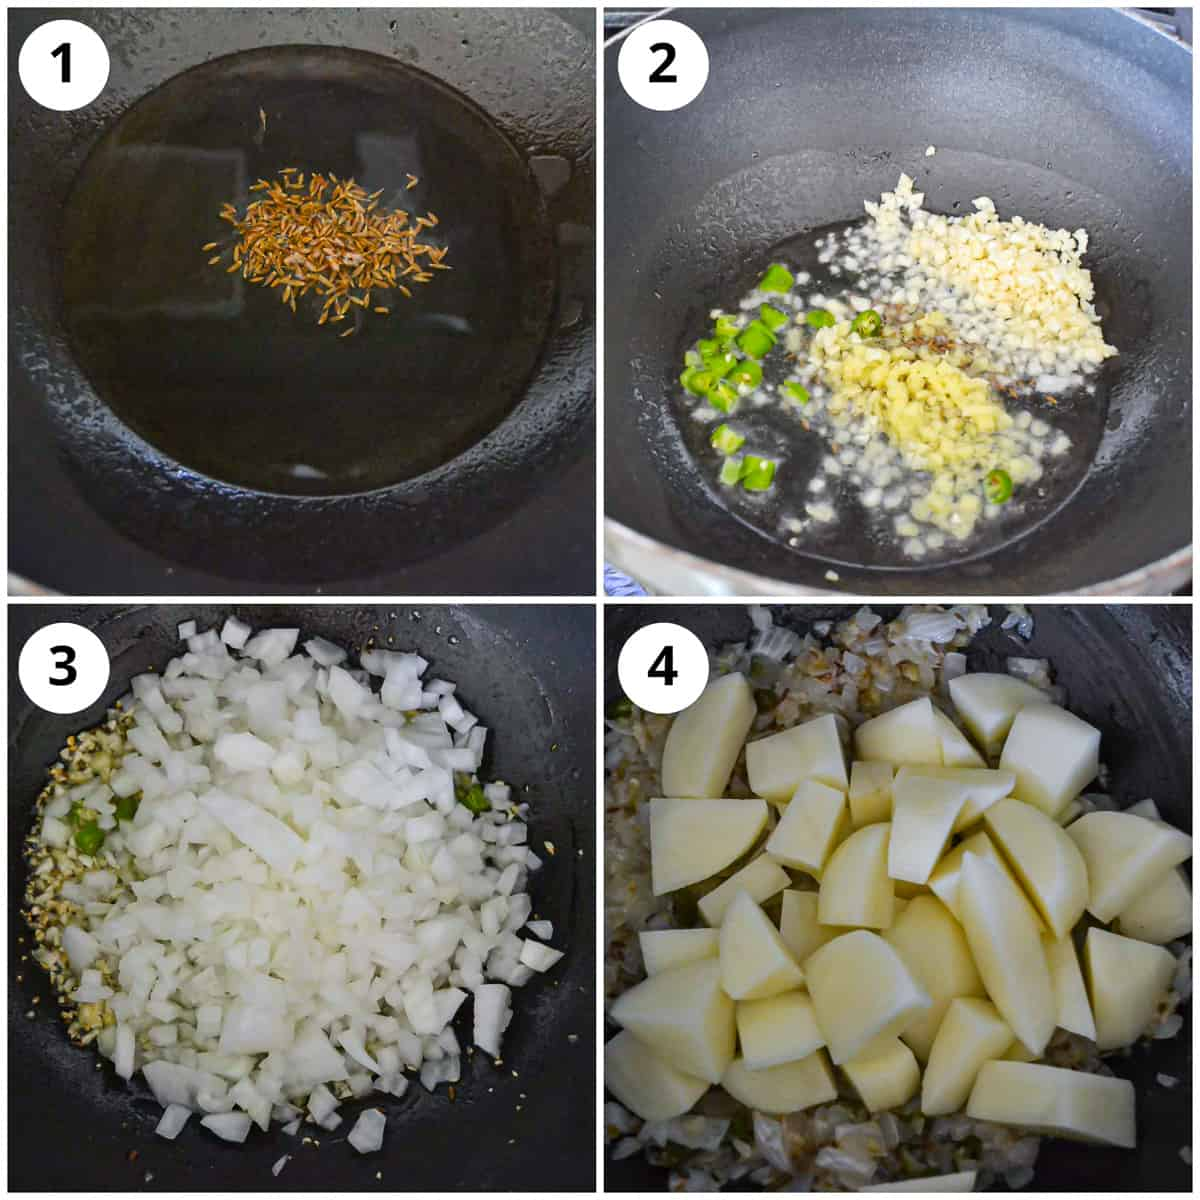 Steps for cooking cumin seeds, ginger, garlic, onion and potatoes in oil